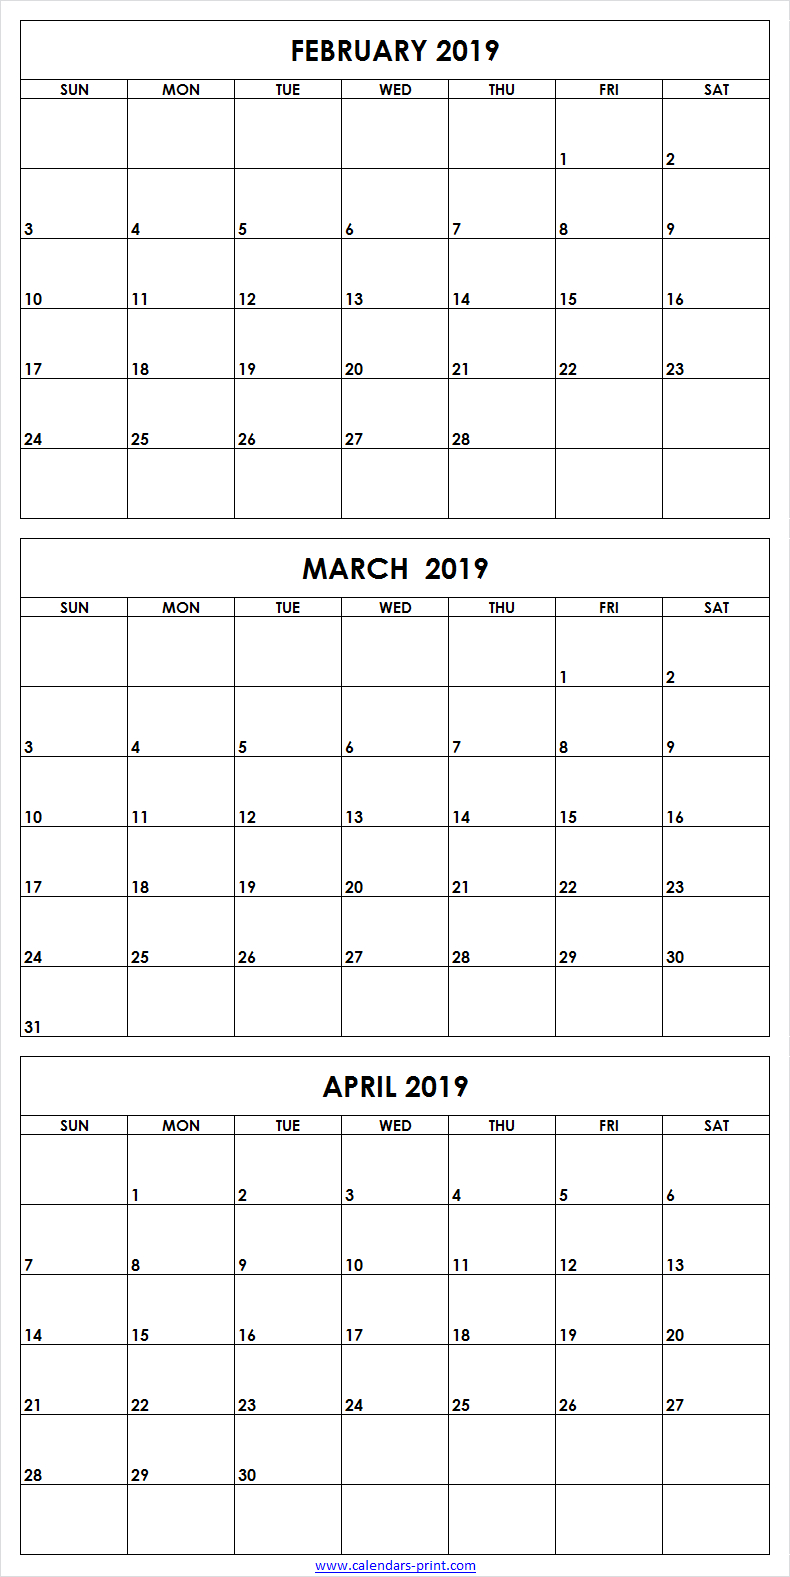 3 Month February To April 2019 Calendar Template | February 2019 Calendar 2019 3 Months